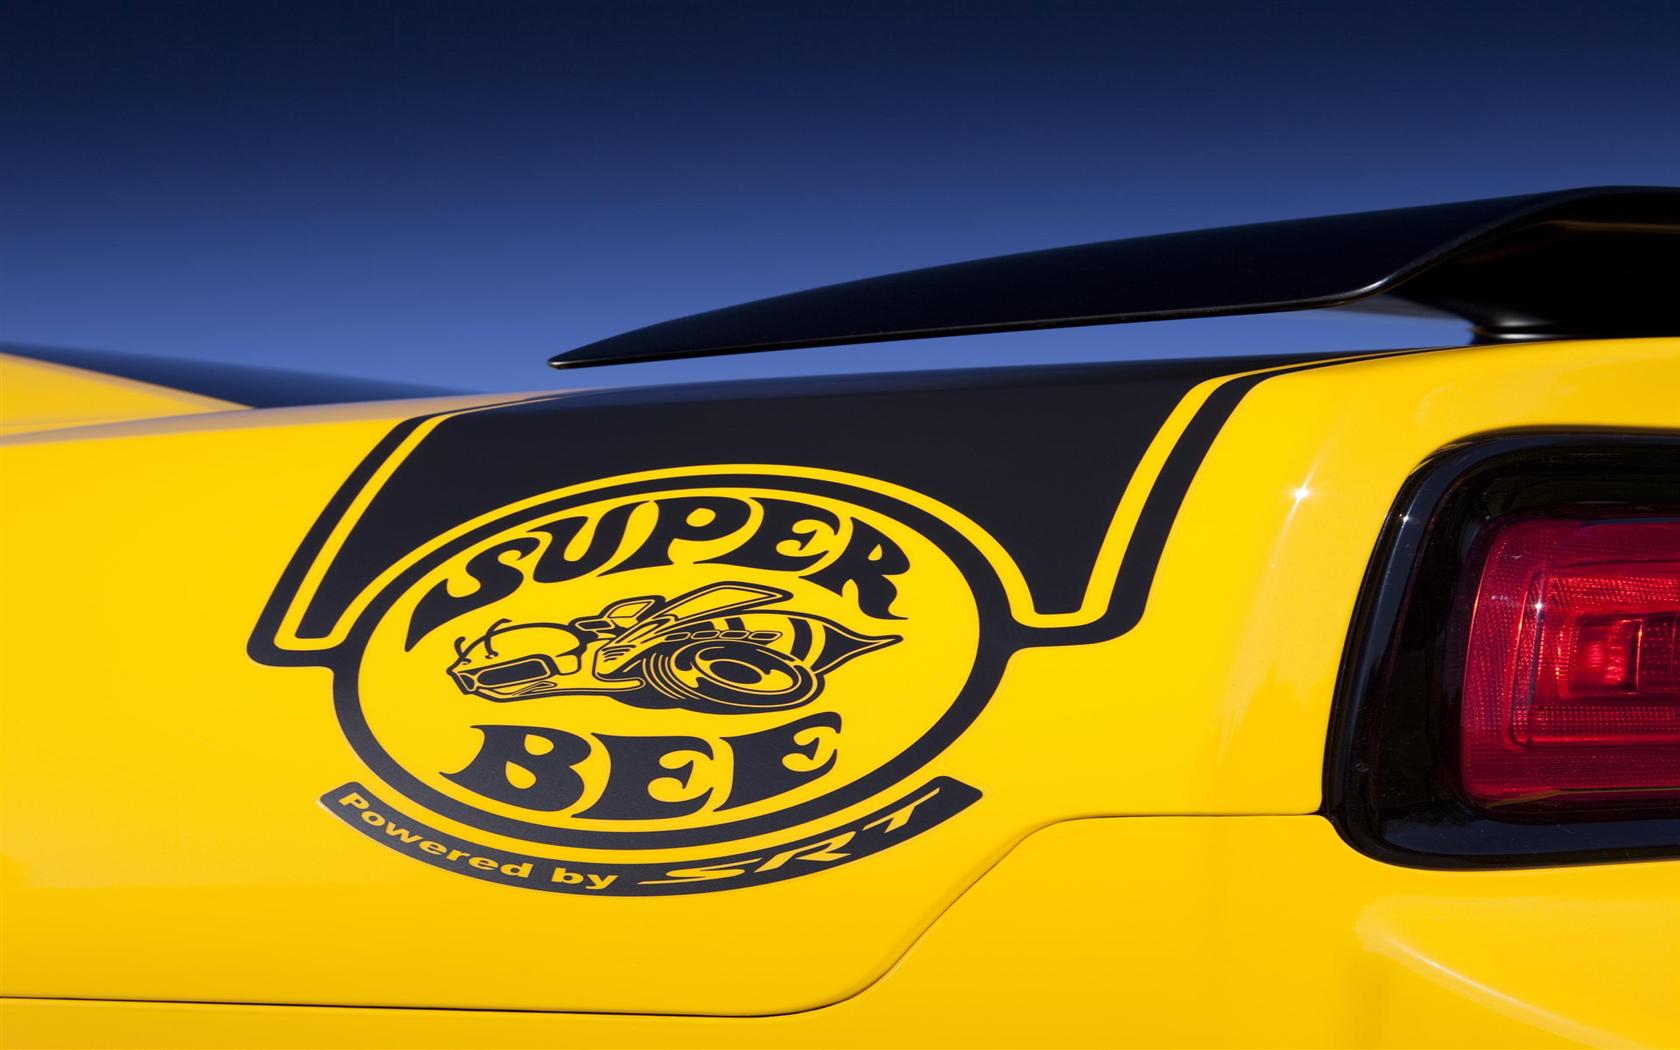 2012 Dodge Charger SRT8 Super Bee Image